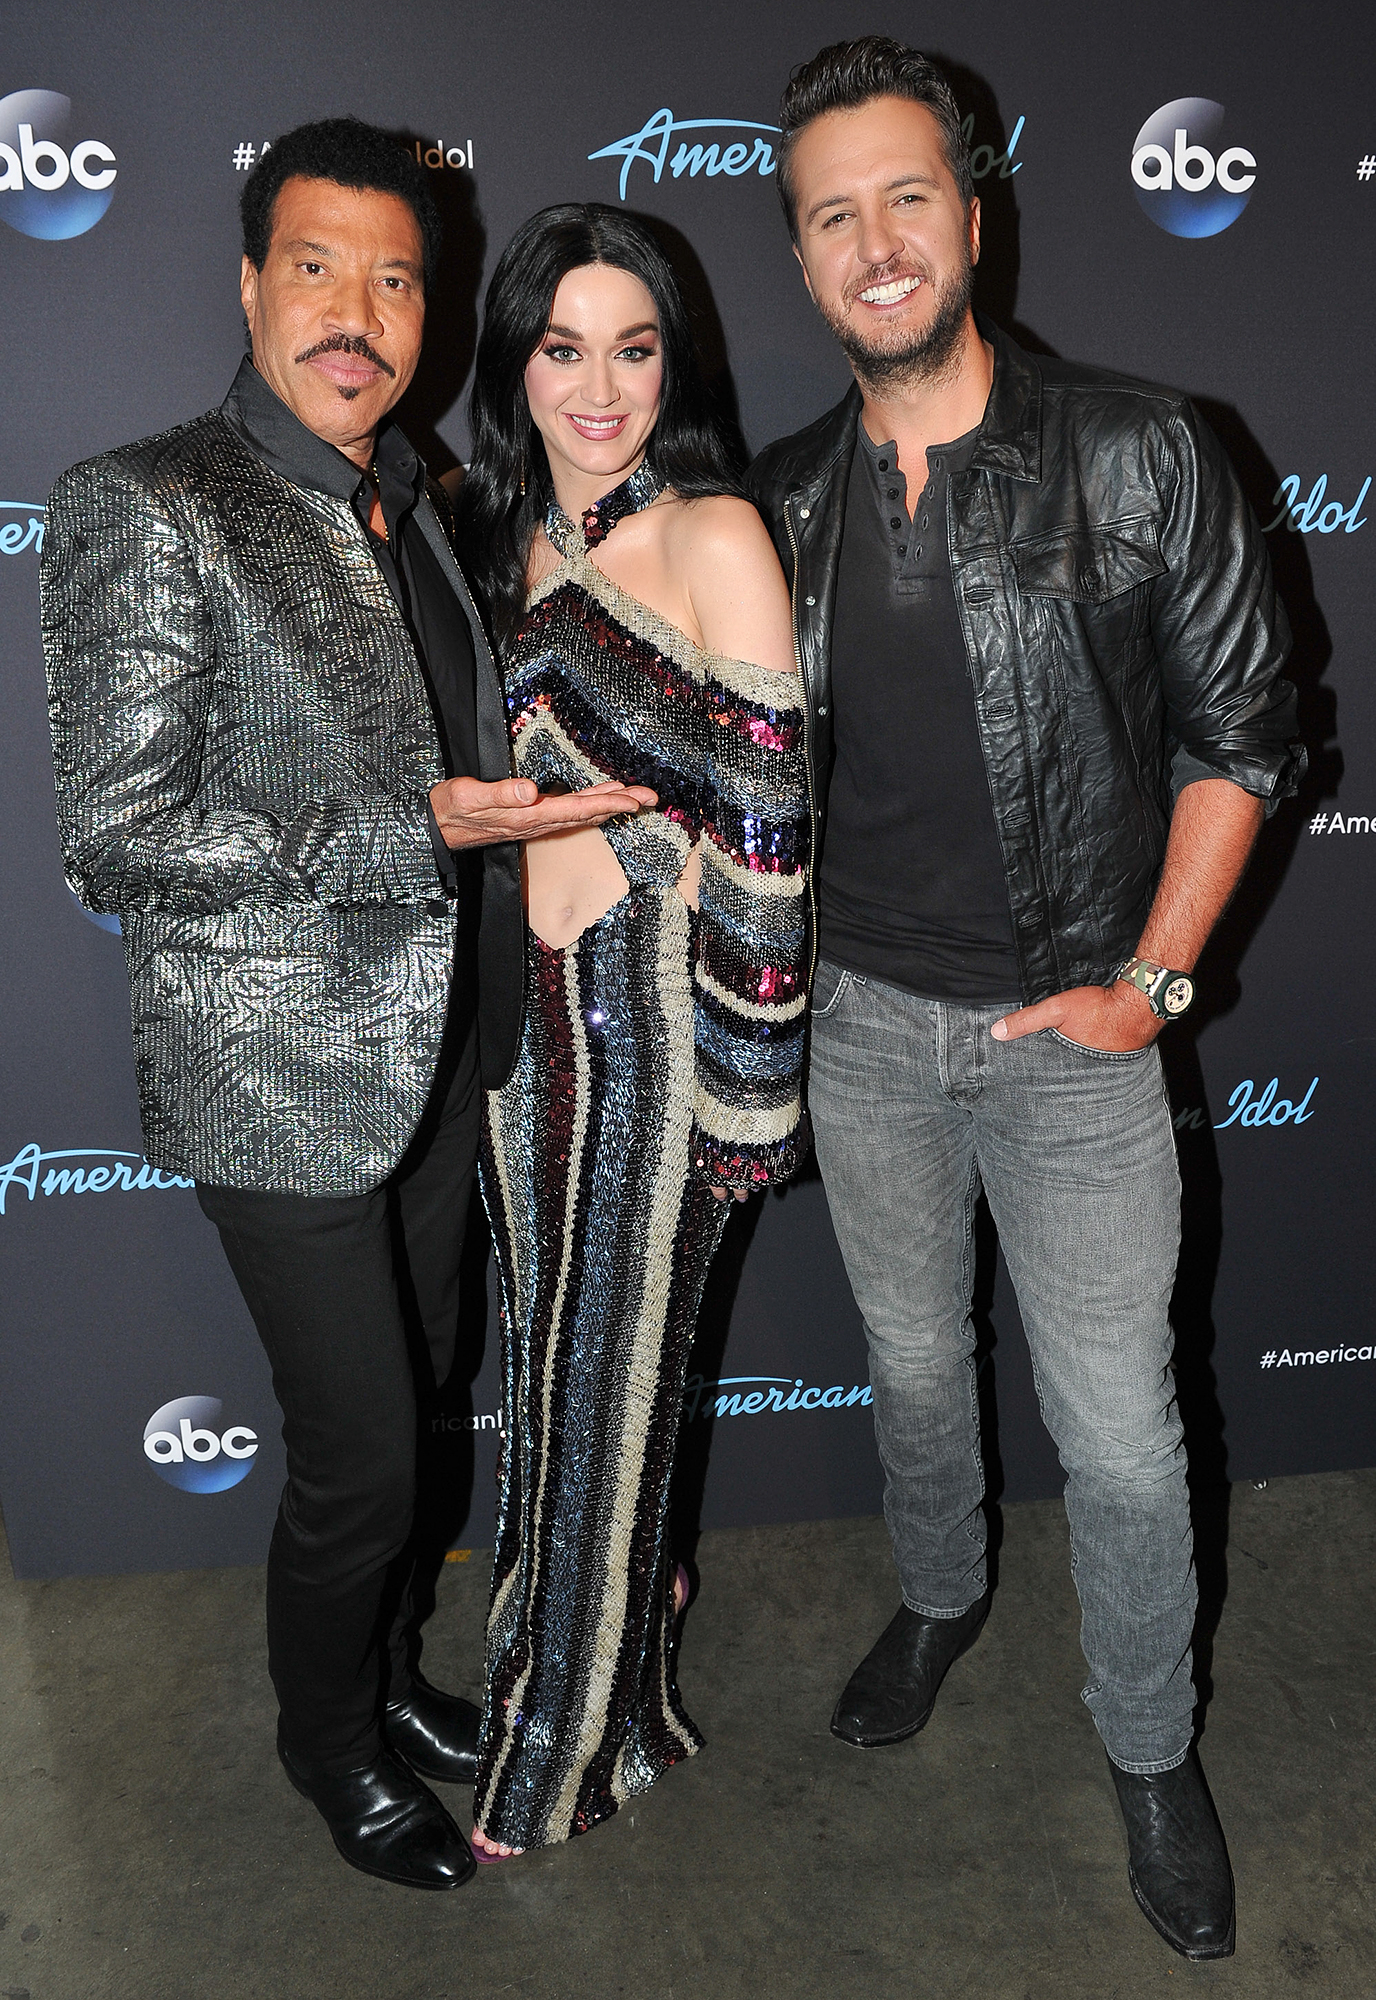 """ABC's """"American Idol"""" - May 13, 2018 - Arrivals"""